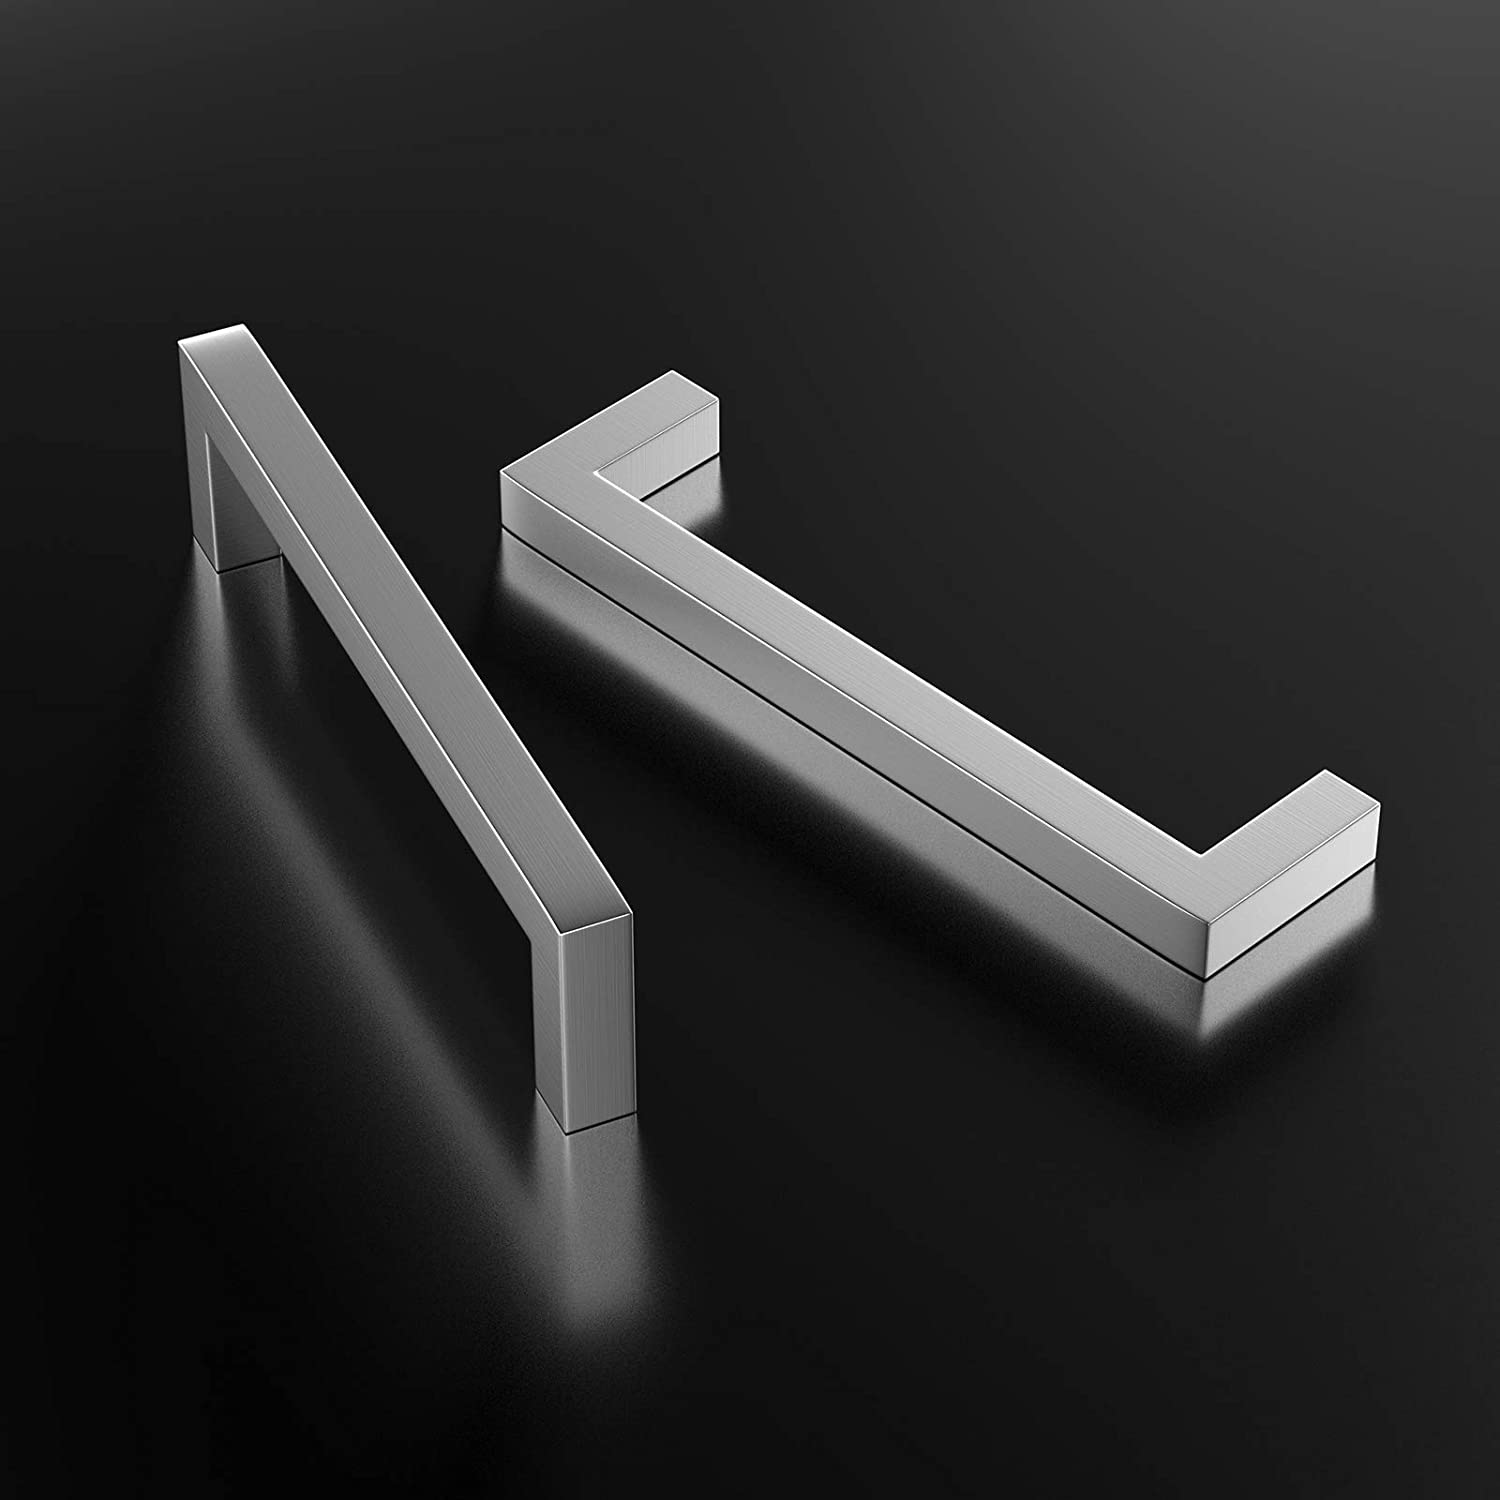 10 Pack 64mm Cupboard Handles Stainless Steel T Bar Pulls Brushed Stainless Steel Cupboard Drawer Bedroom Hardware Pulls